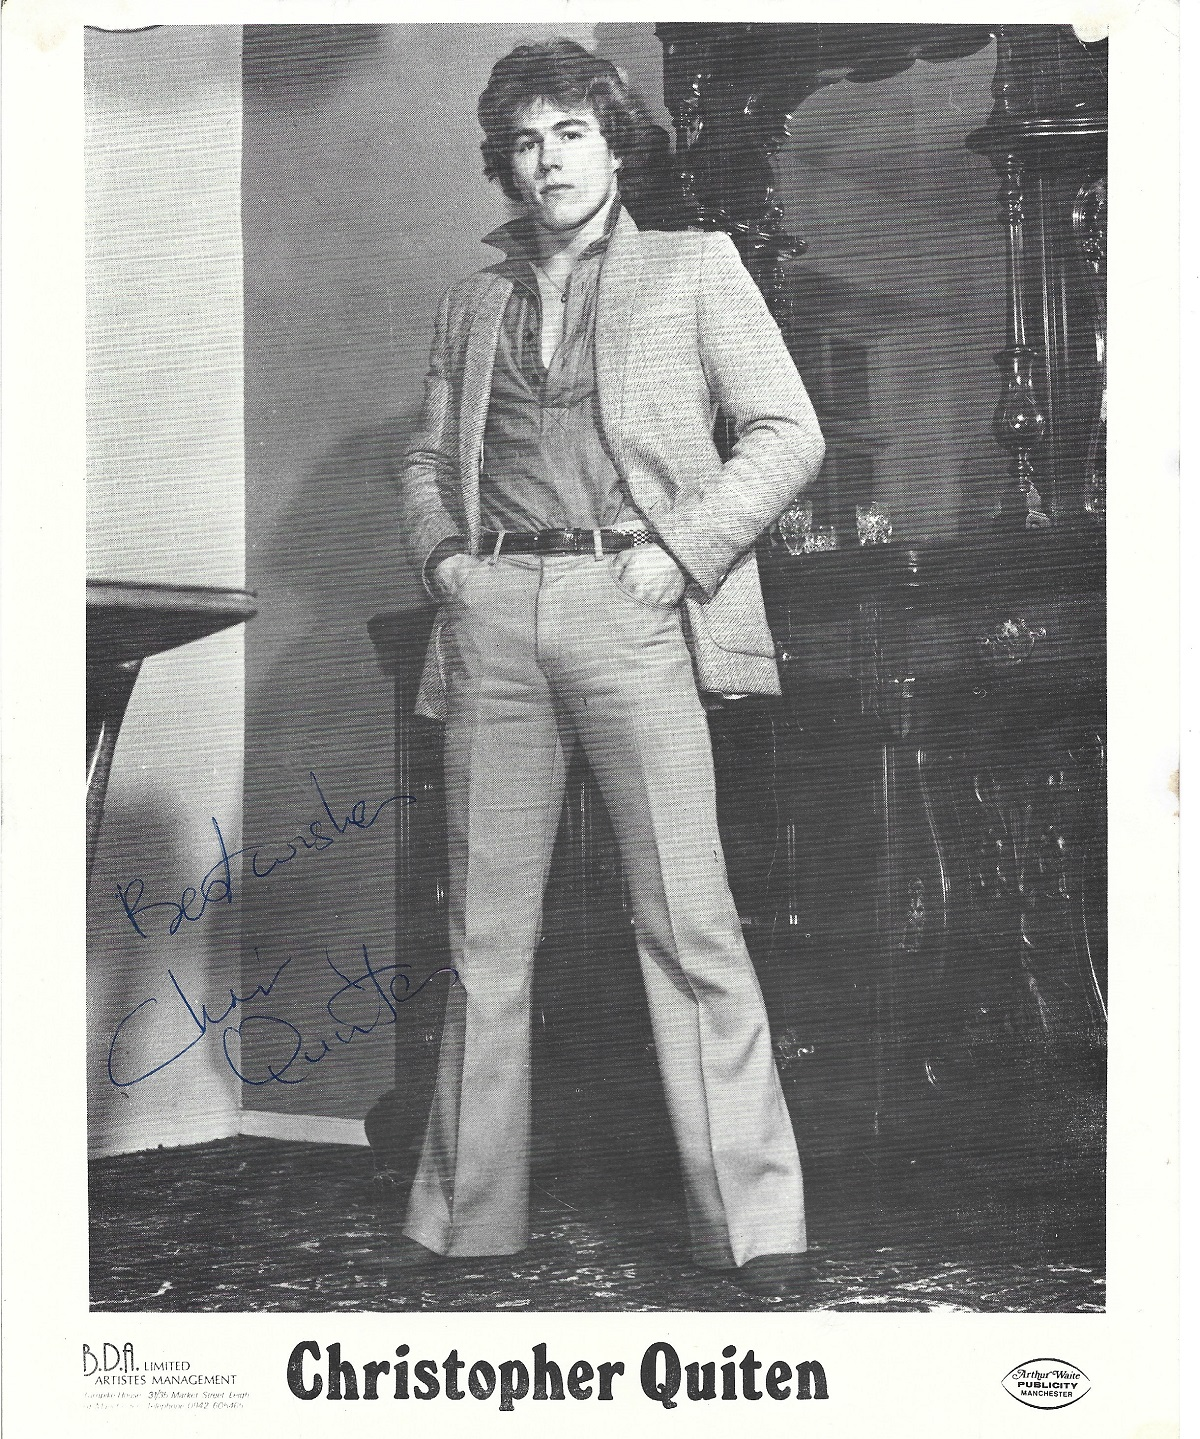 Christopher Quinten 10x8 black and white promo photograph. Quinten is a British actor, best known